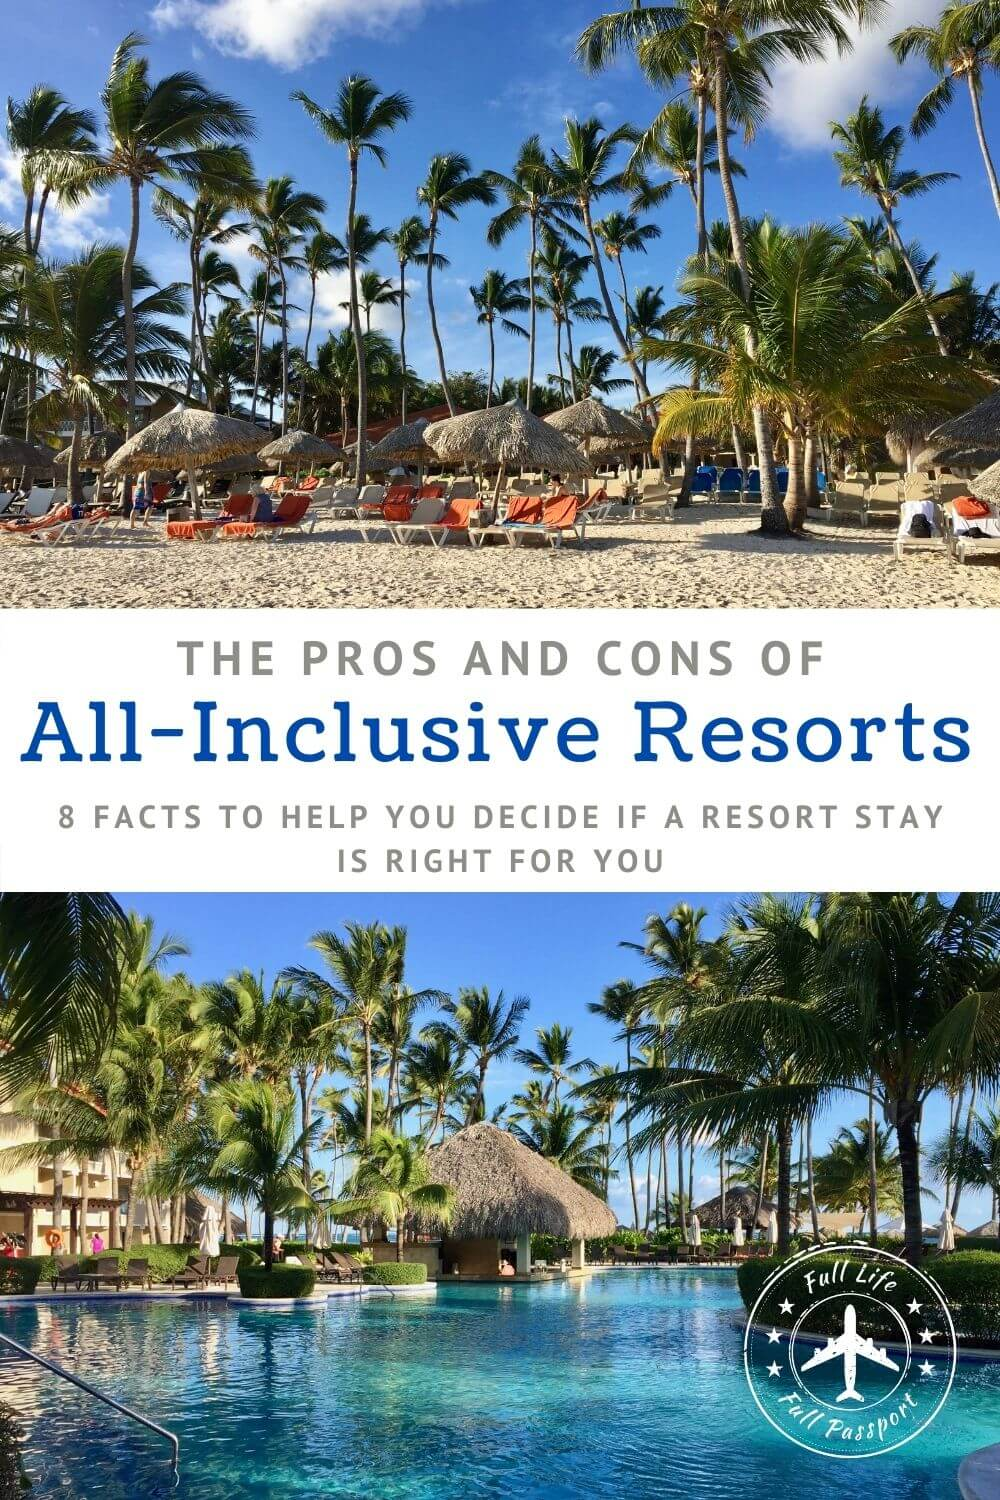 The Pros and Cons of All-Inclusive Resorts